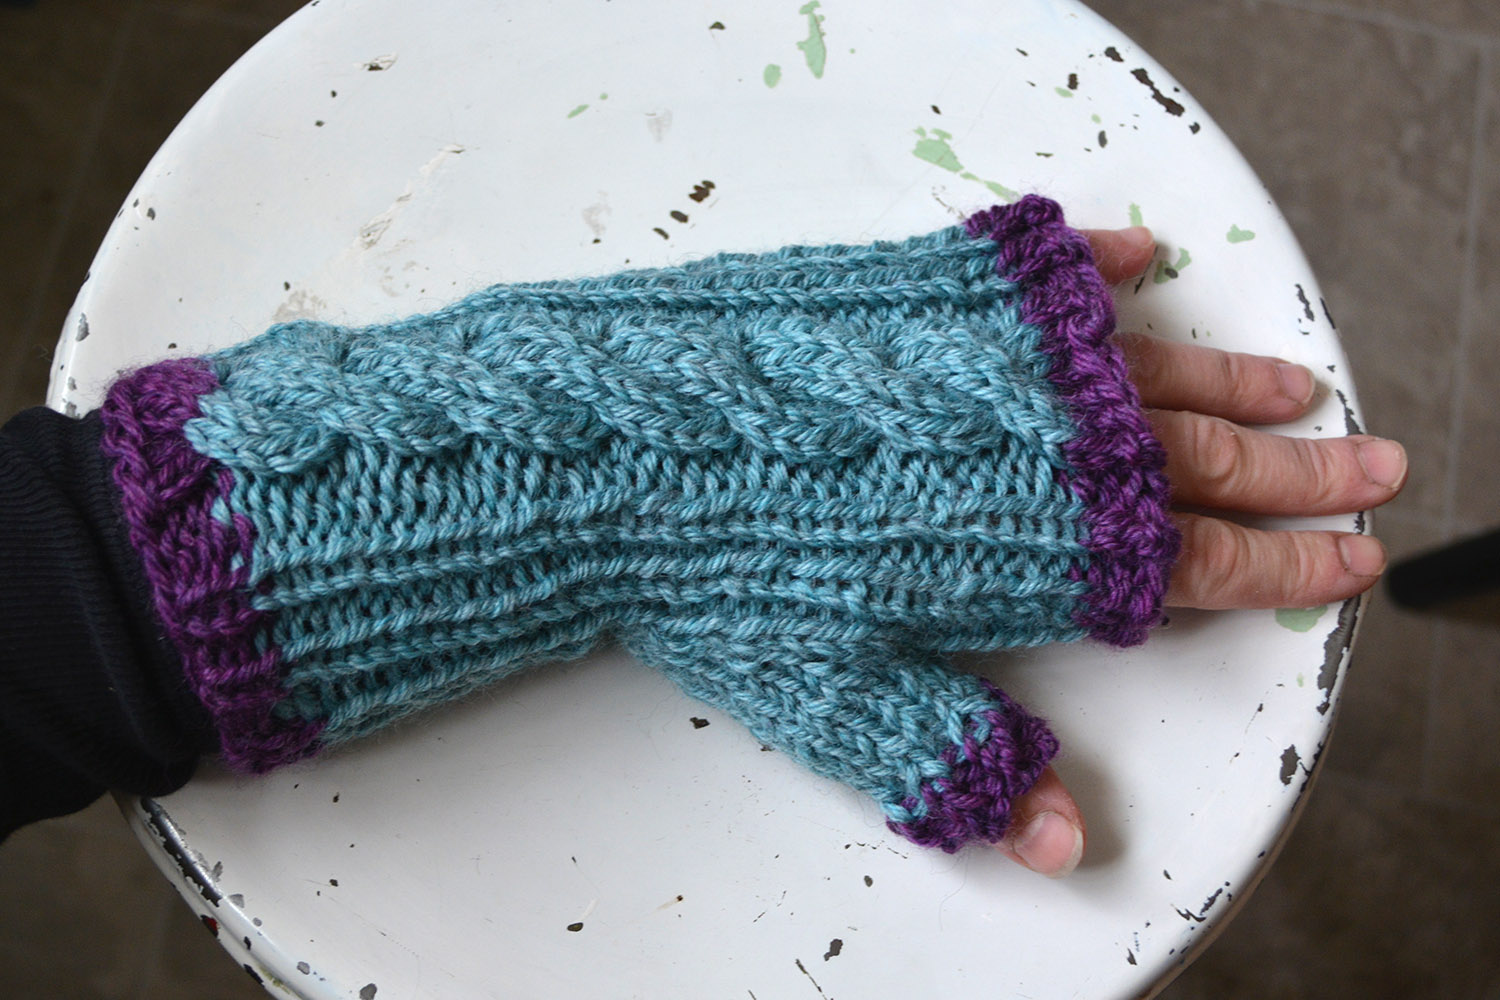 Ladies' cabled quick-knit fingerless mittens